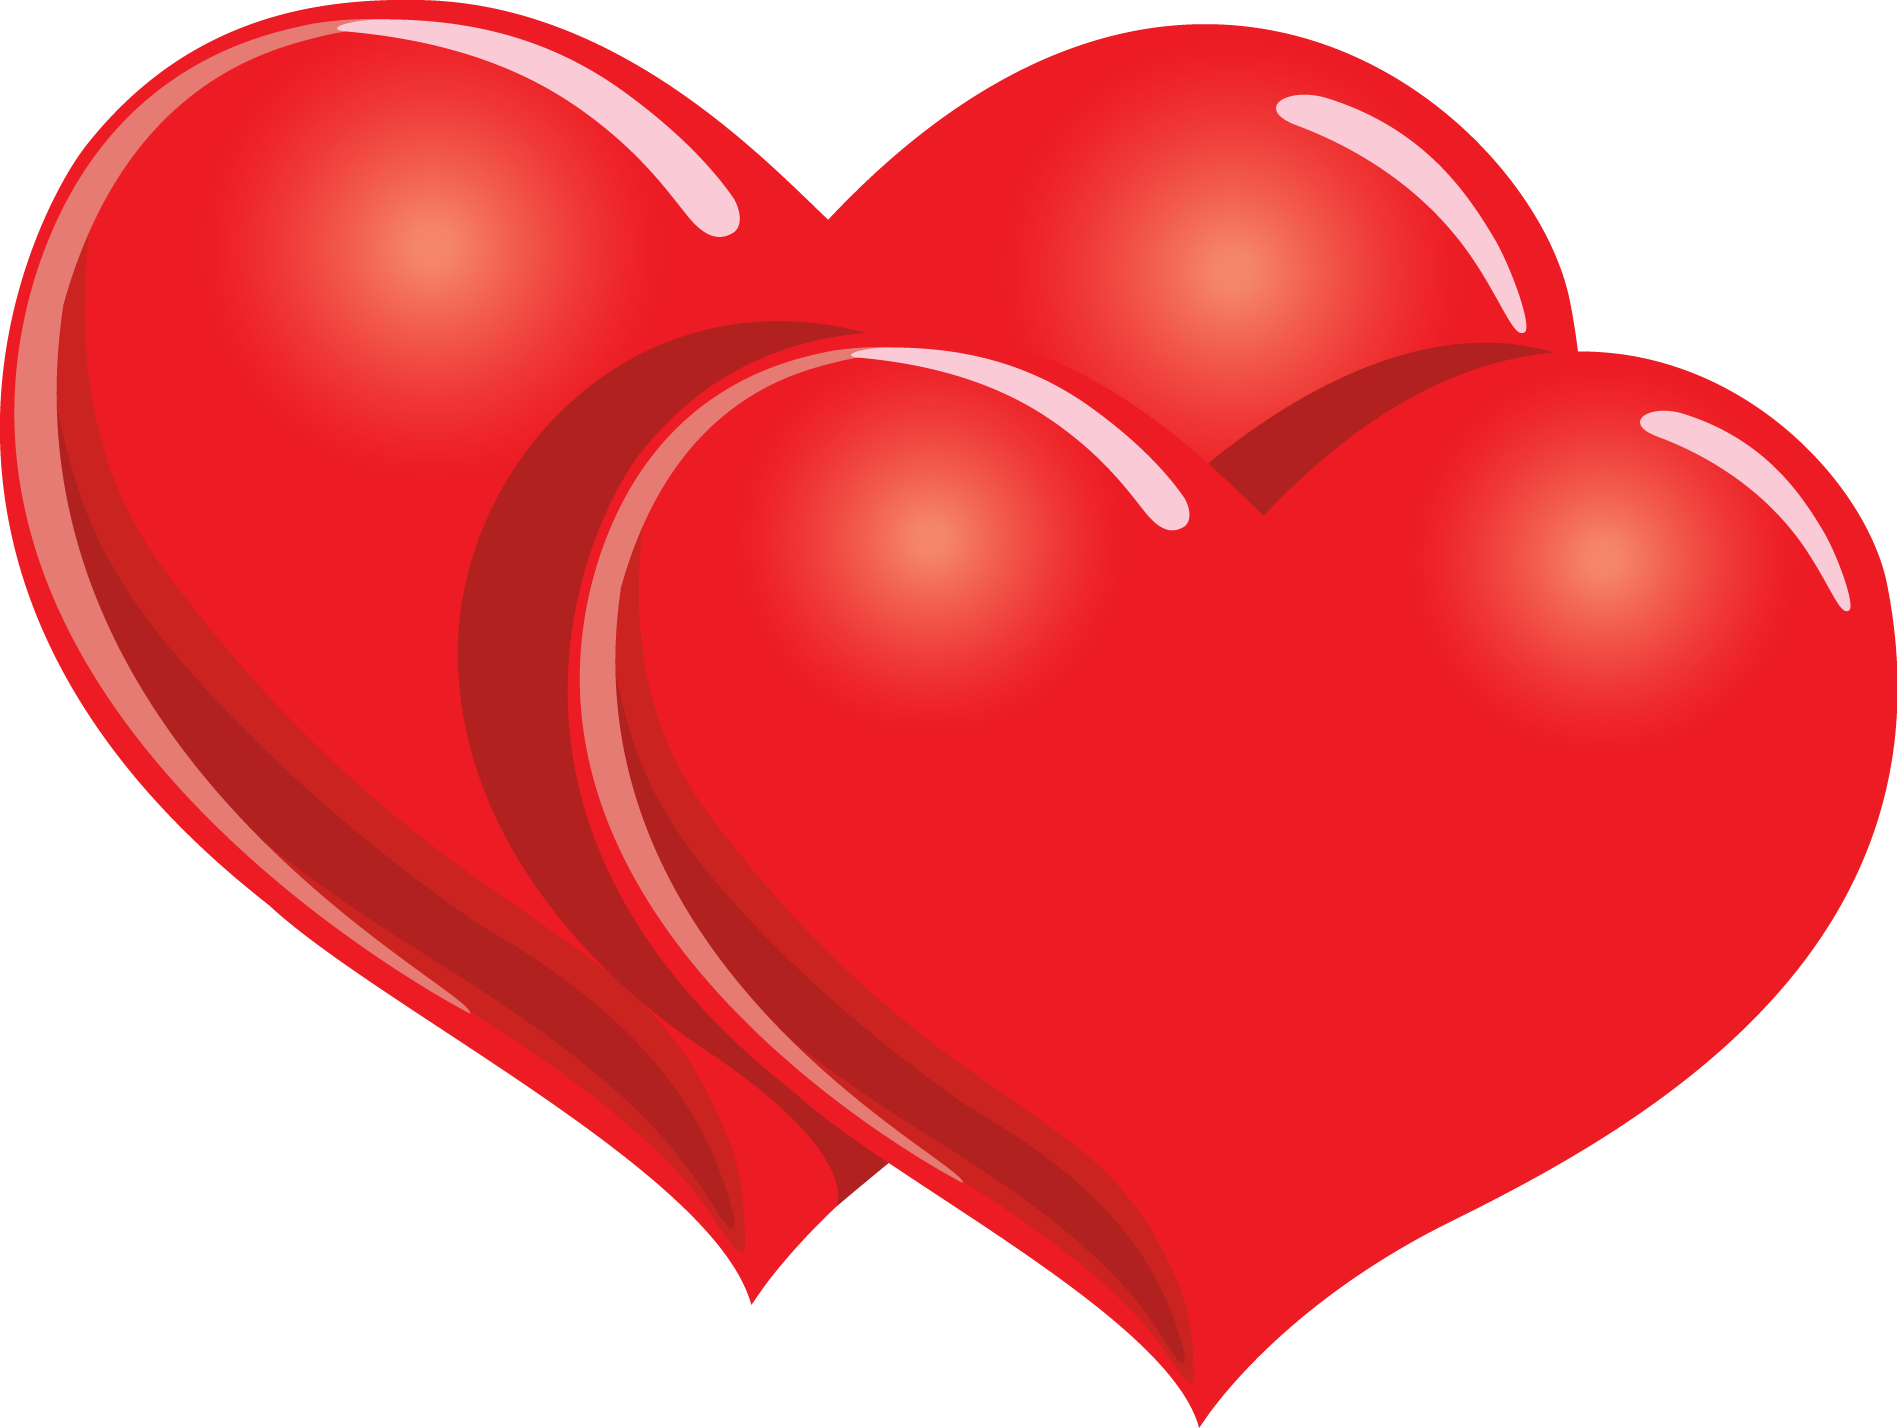 Hearts hd transparent images. Valentines heart png graphic transparent download